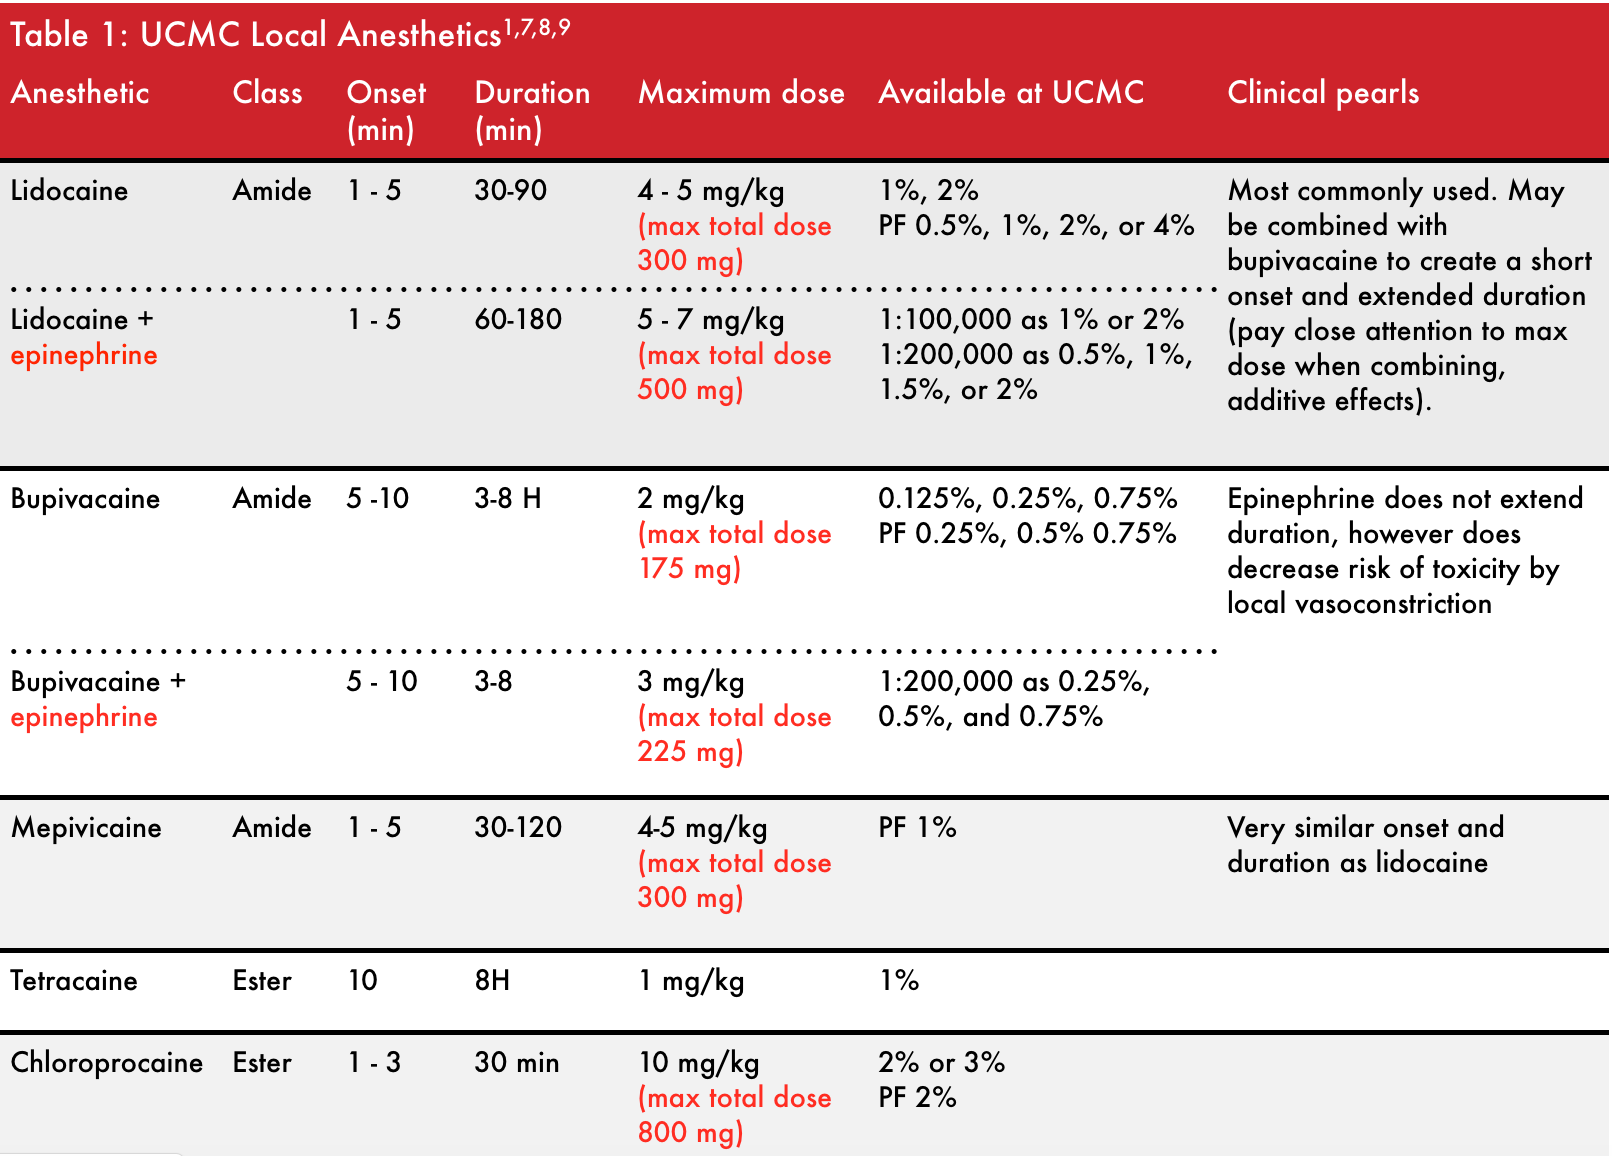 COMMONLY USED LOCAL ANESTHETICS   -COURTESY OF UCMC ED PHARMACY.WRITTEN BY: BRITTANY SLOCUM, PHARMD,EDITED BY: JESSIE WINTER, PHARMD, BCPS